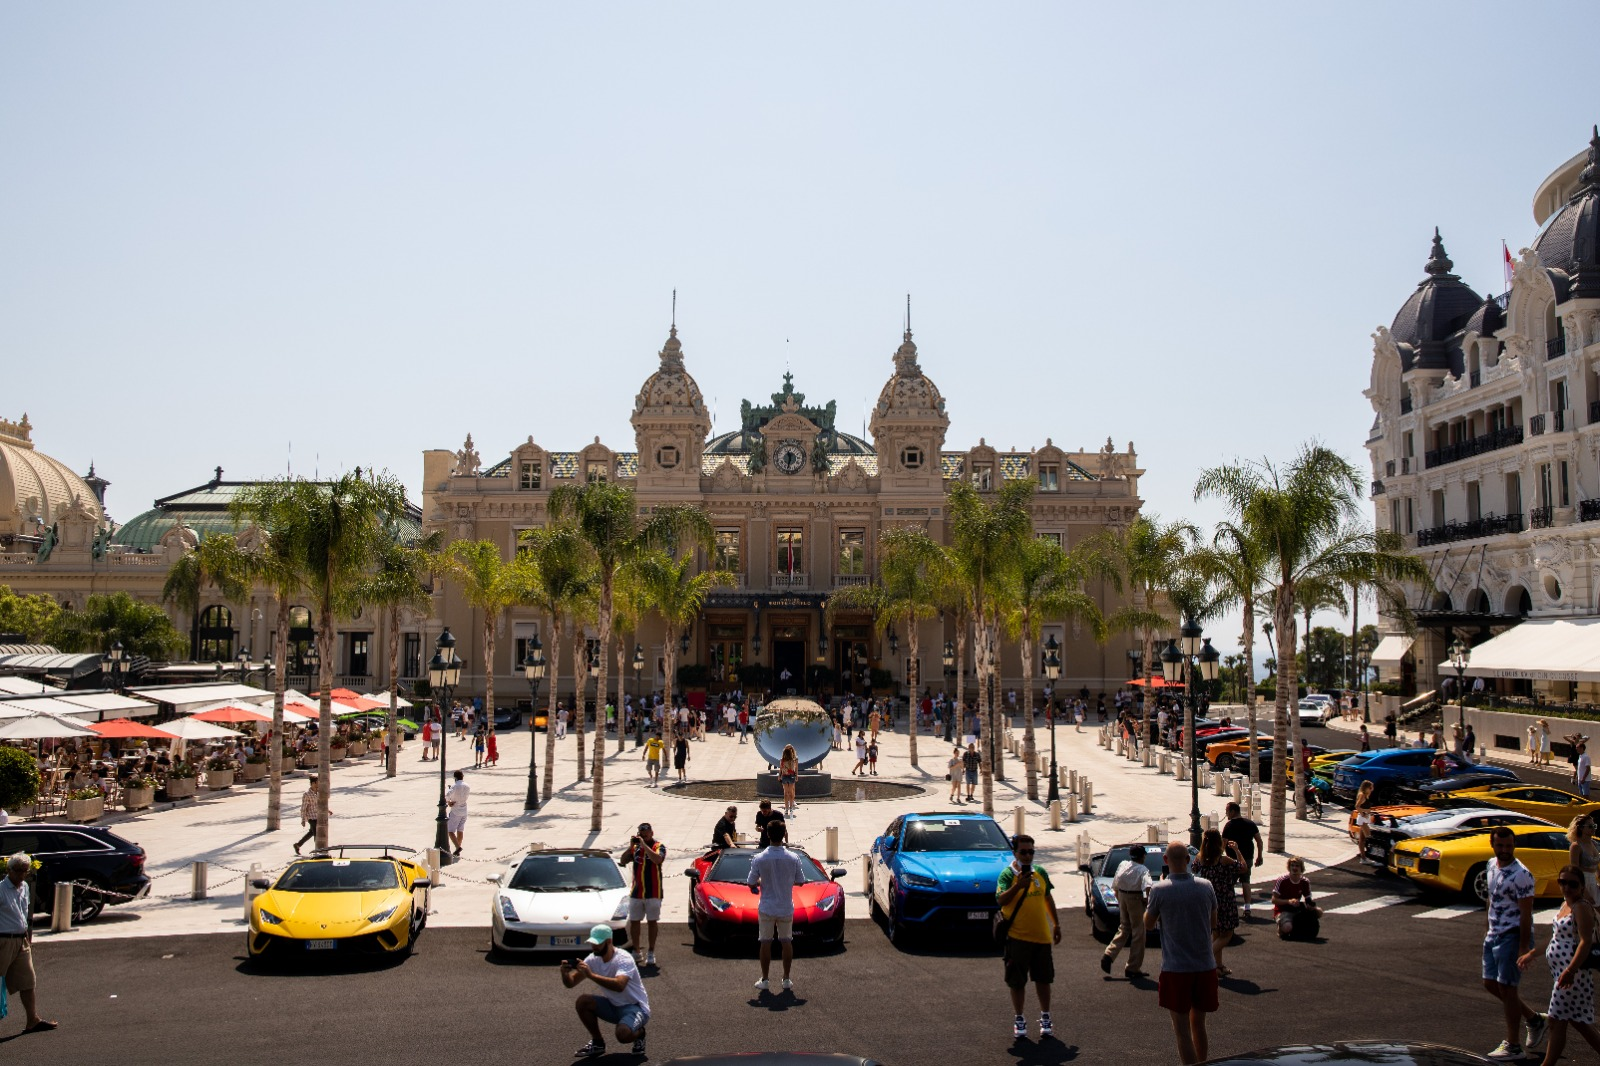 Lamborghinis at the Place du Casino Monaco